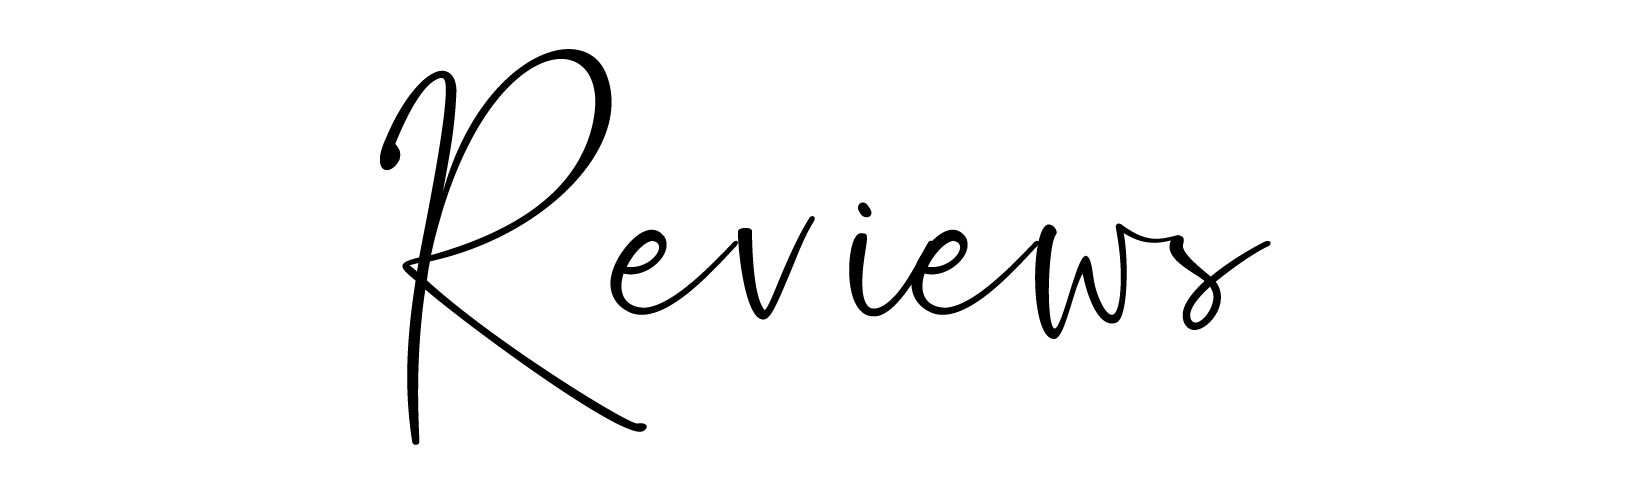 reviews-06.png